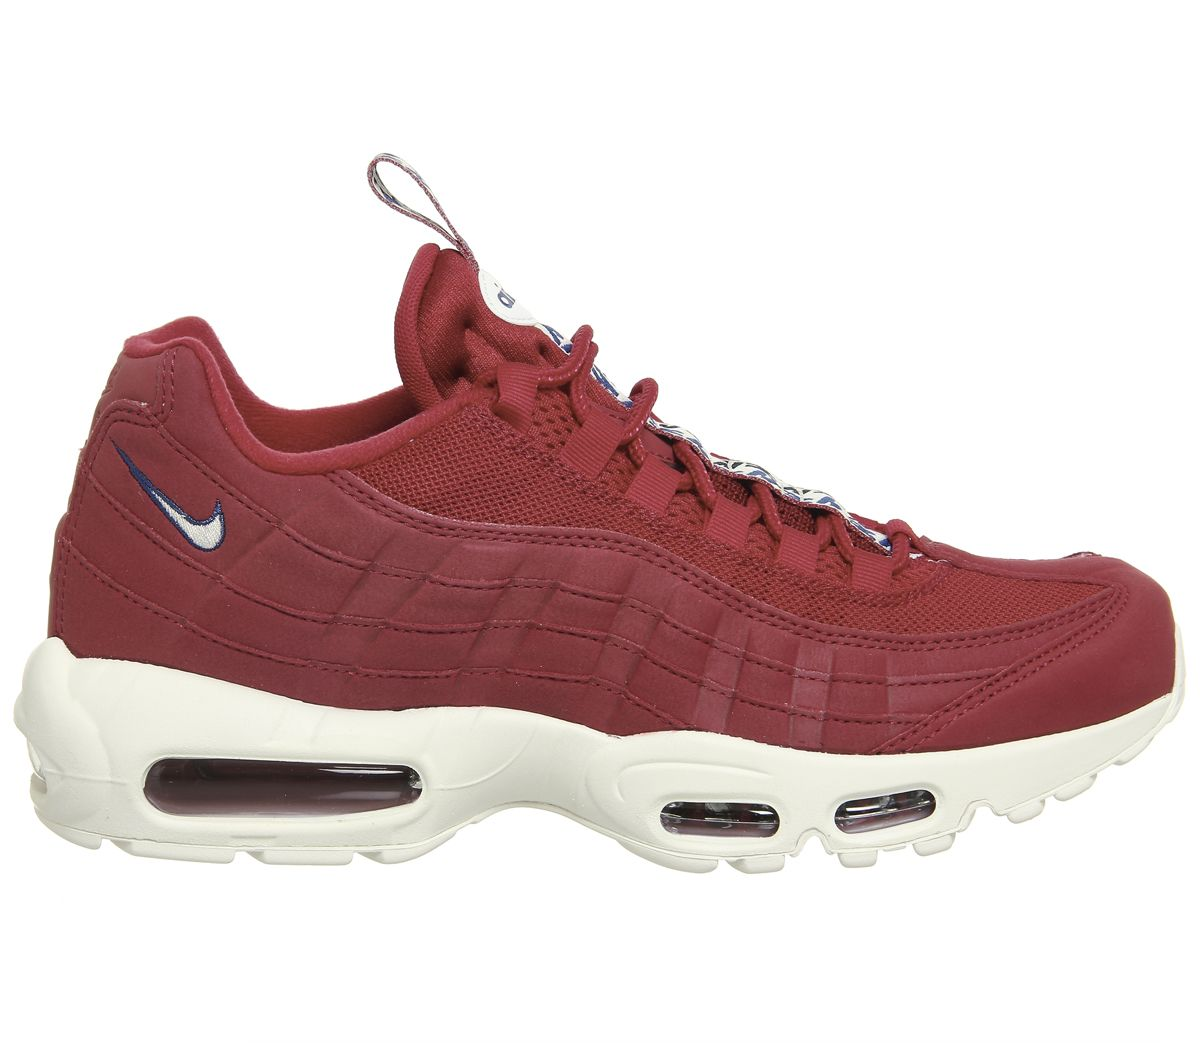 723e4f1be4 Nike Air Max 95 Gym Red Sail - His trainers